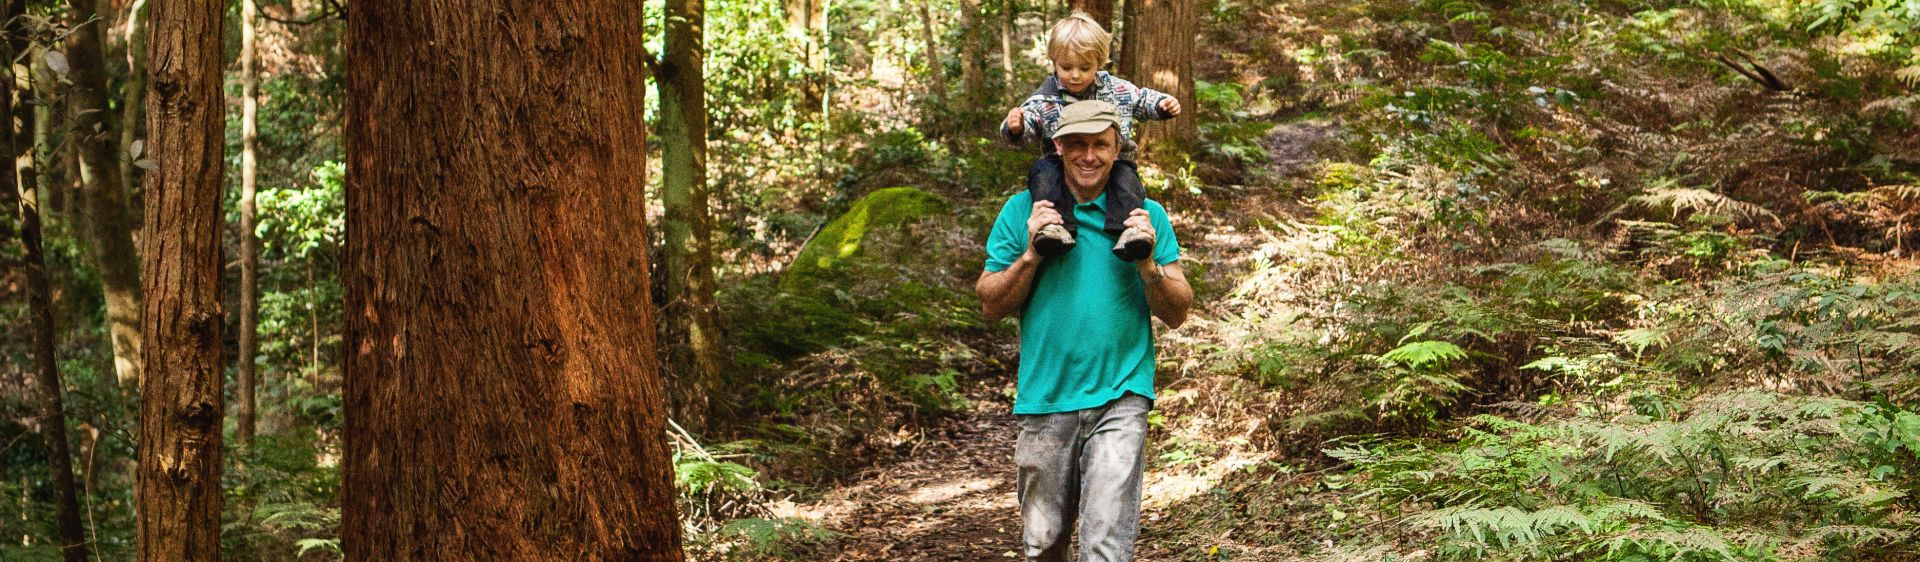 Bushwalking in Macquarie Pass National Park, Shellharbour